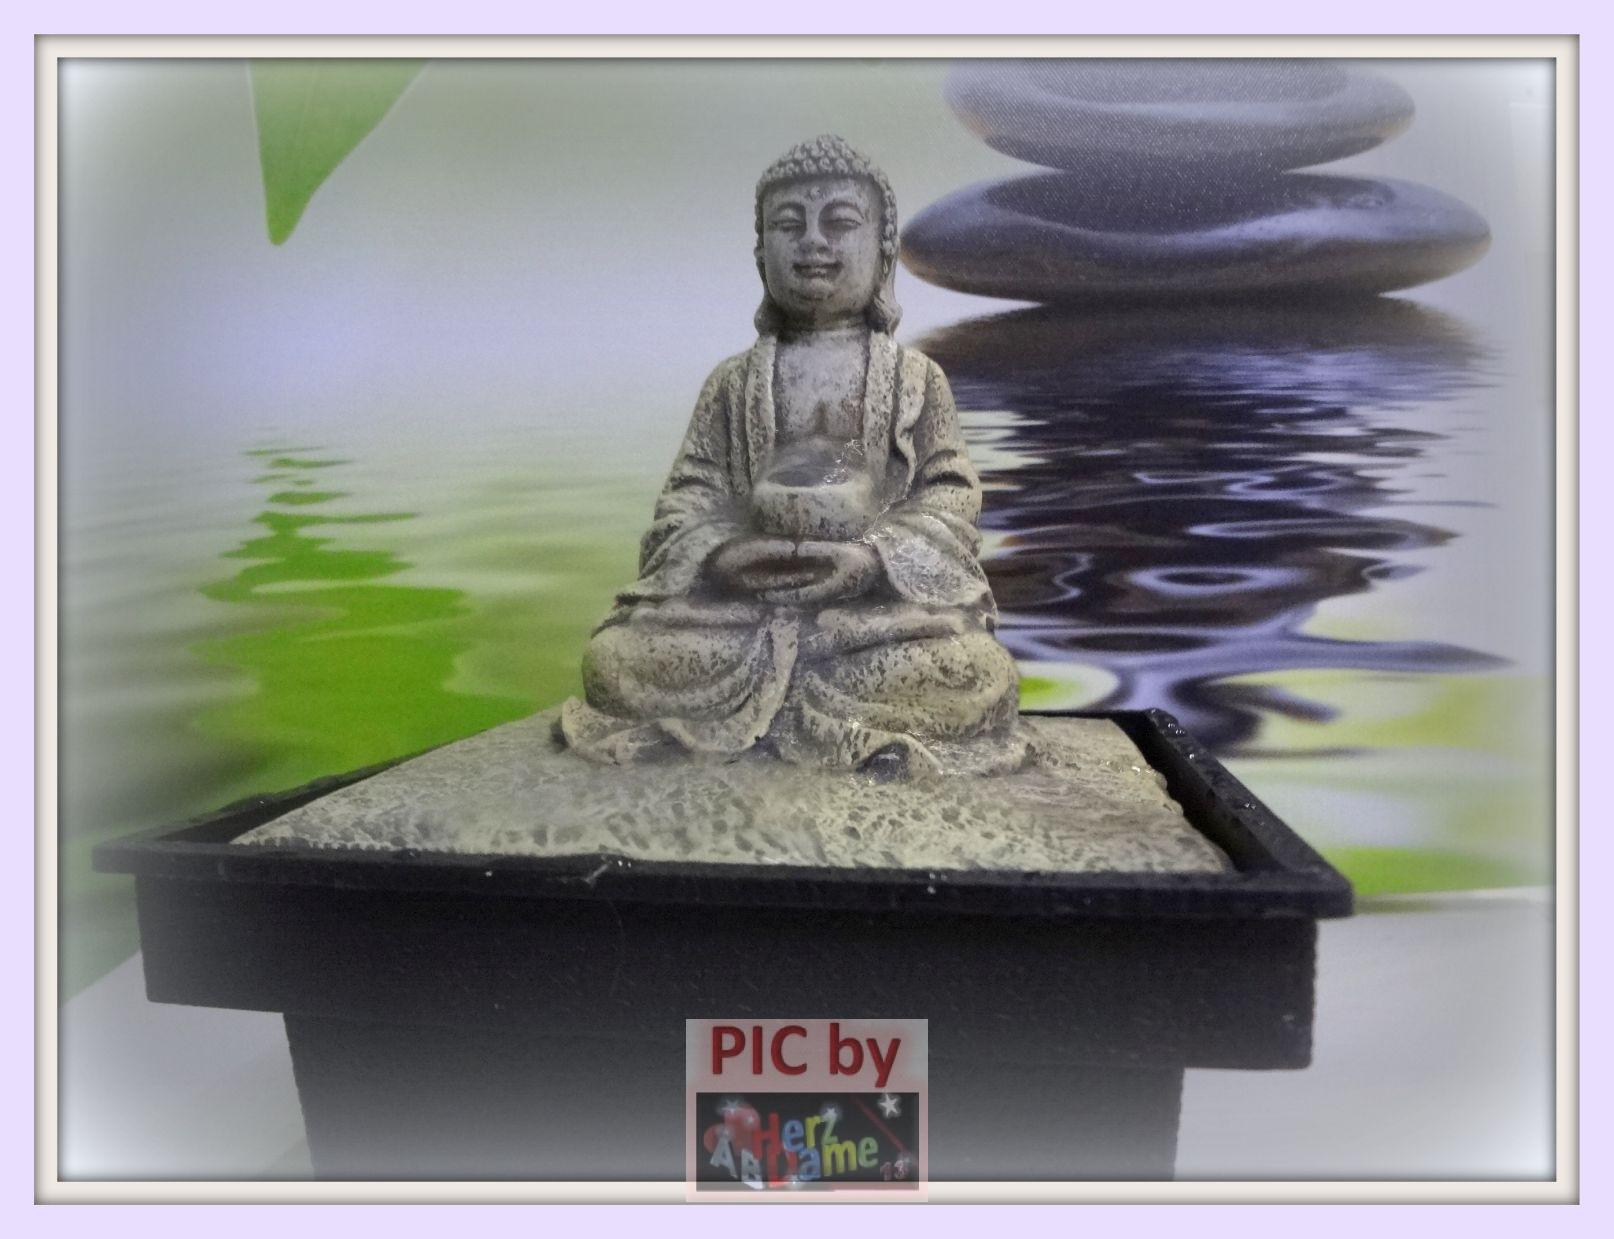 ab474b meditation raum deko kleiner zimmerbrunnen buddha. Black Bedroom Furniture Sets. Home Design Ideas